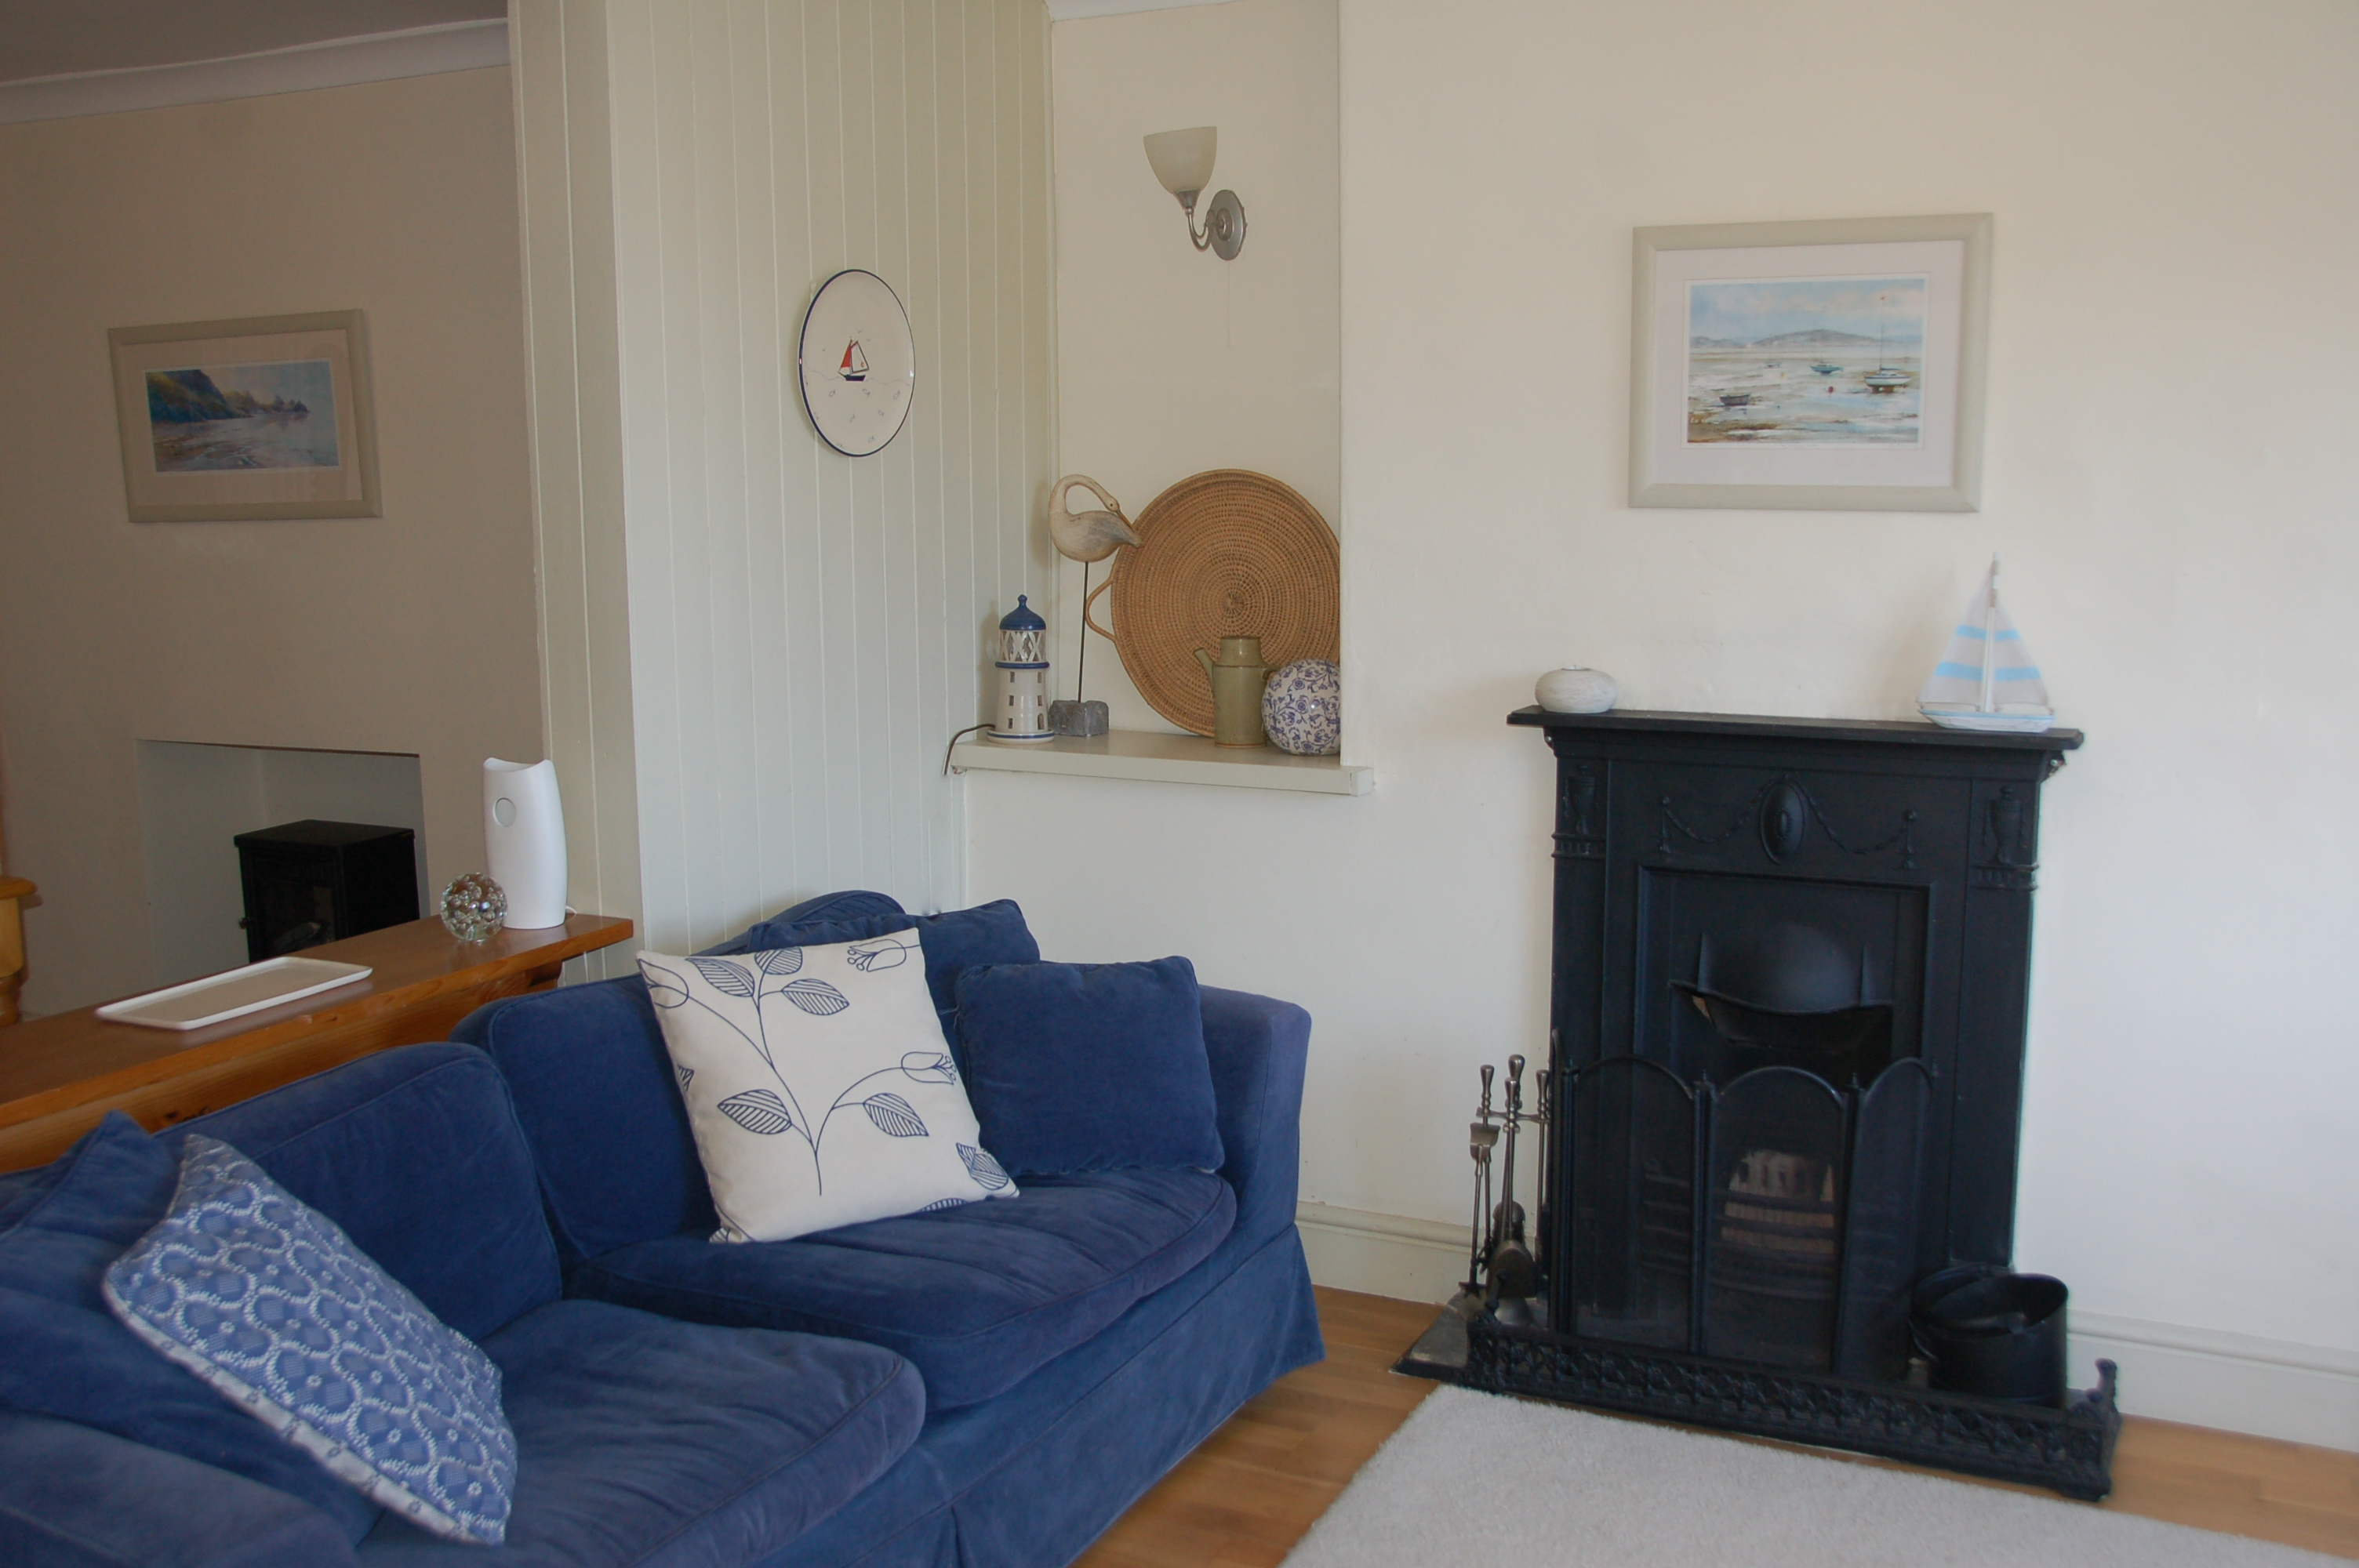 The little fireplace sets off the room;  there are two comfy sofas to flop down in when you come back from a day out